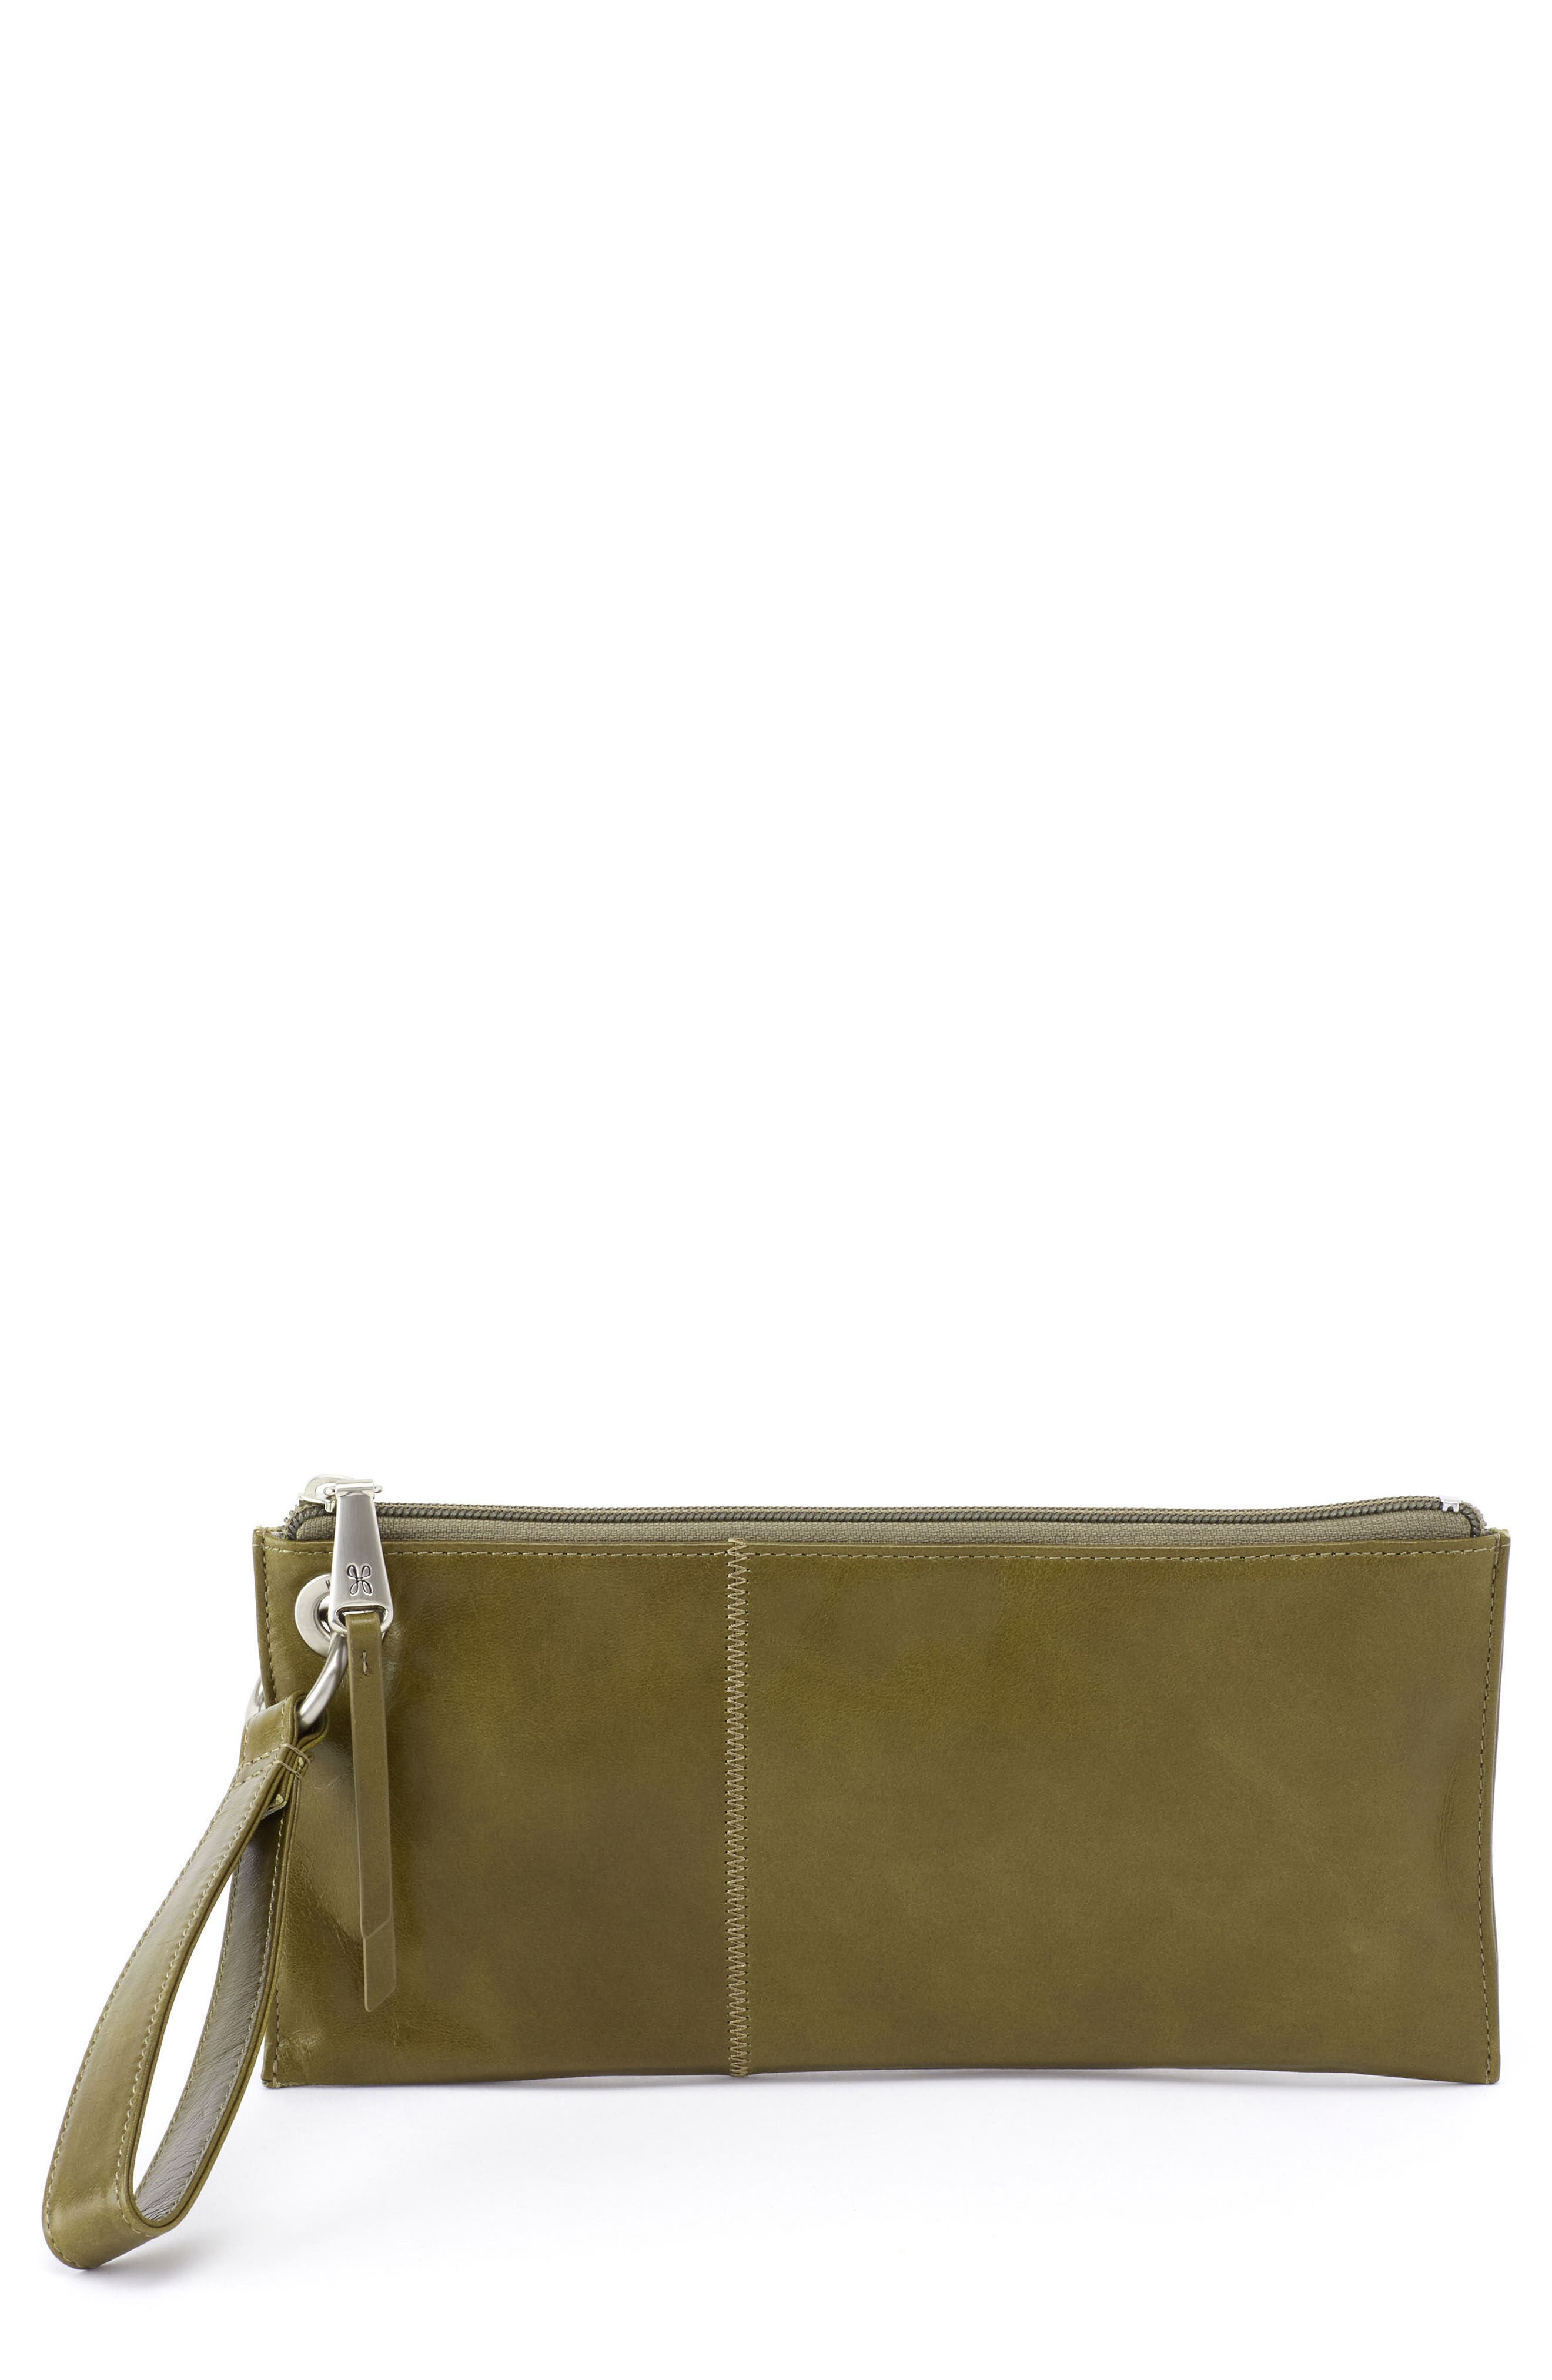 Statement Bag - Beach Girl 3 by VIDA VIDA